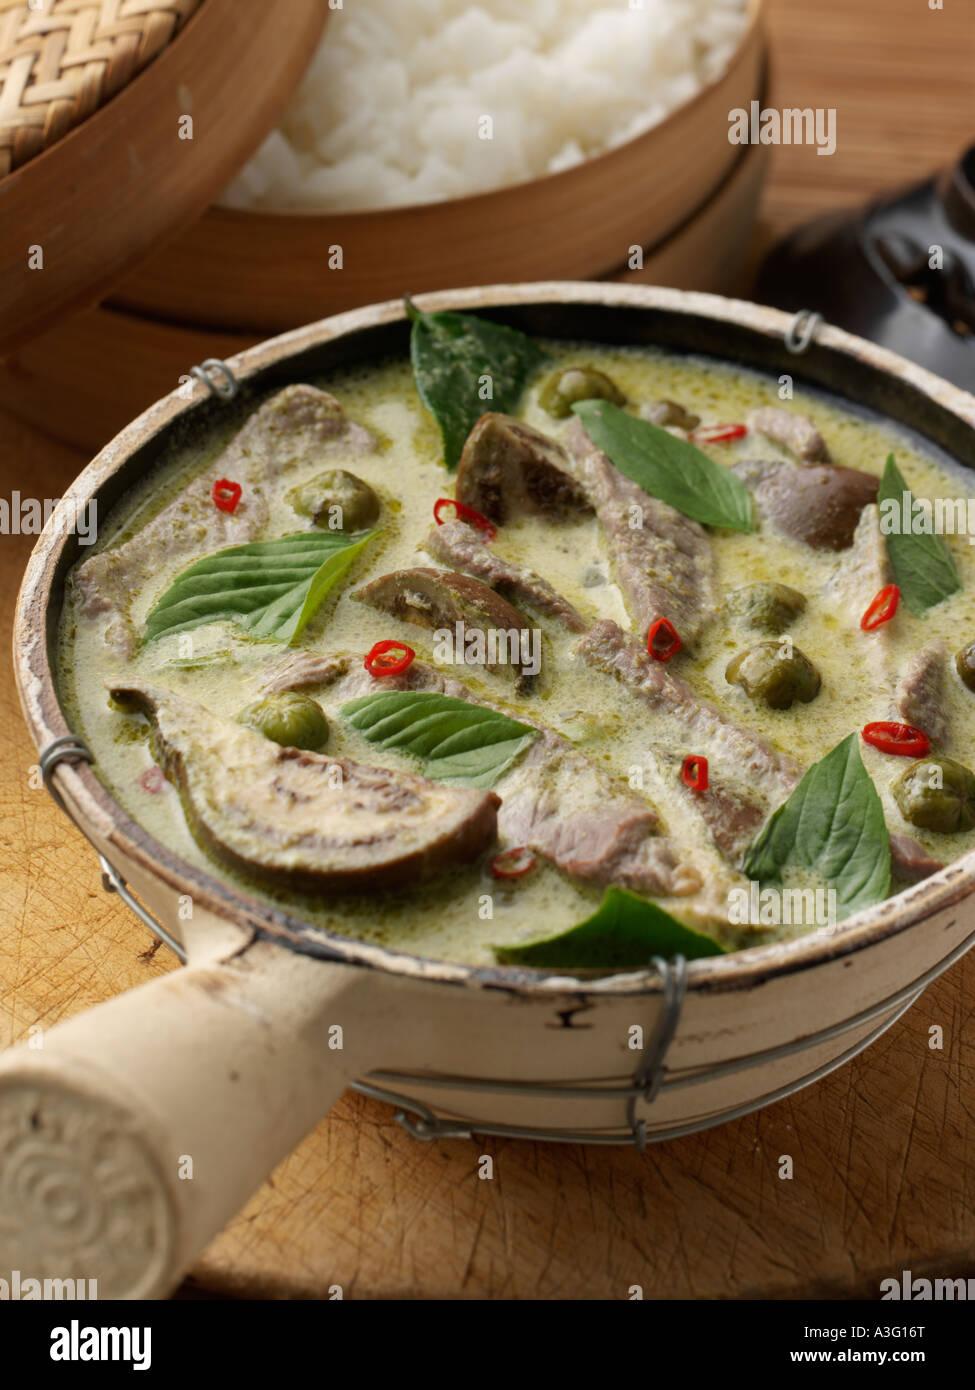 Dinner party thai green beef curry stock photos dinner party thai thai beef green curry in a bowl close up editorial food stock image forumfinder Choice Image